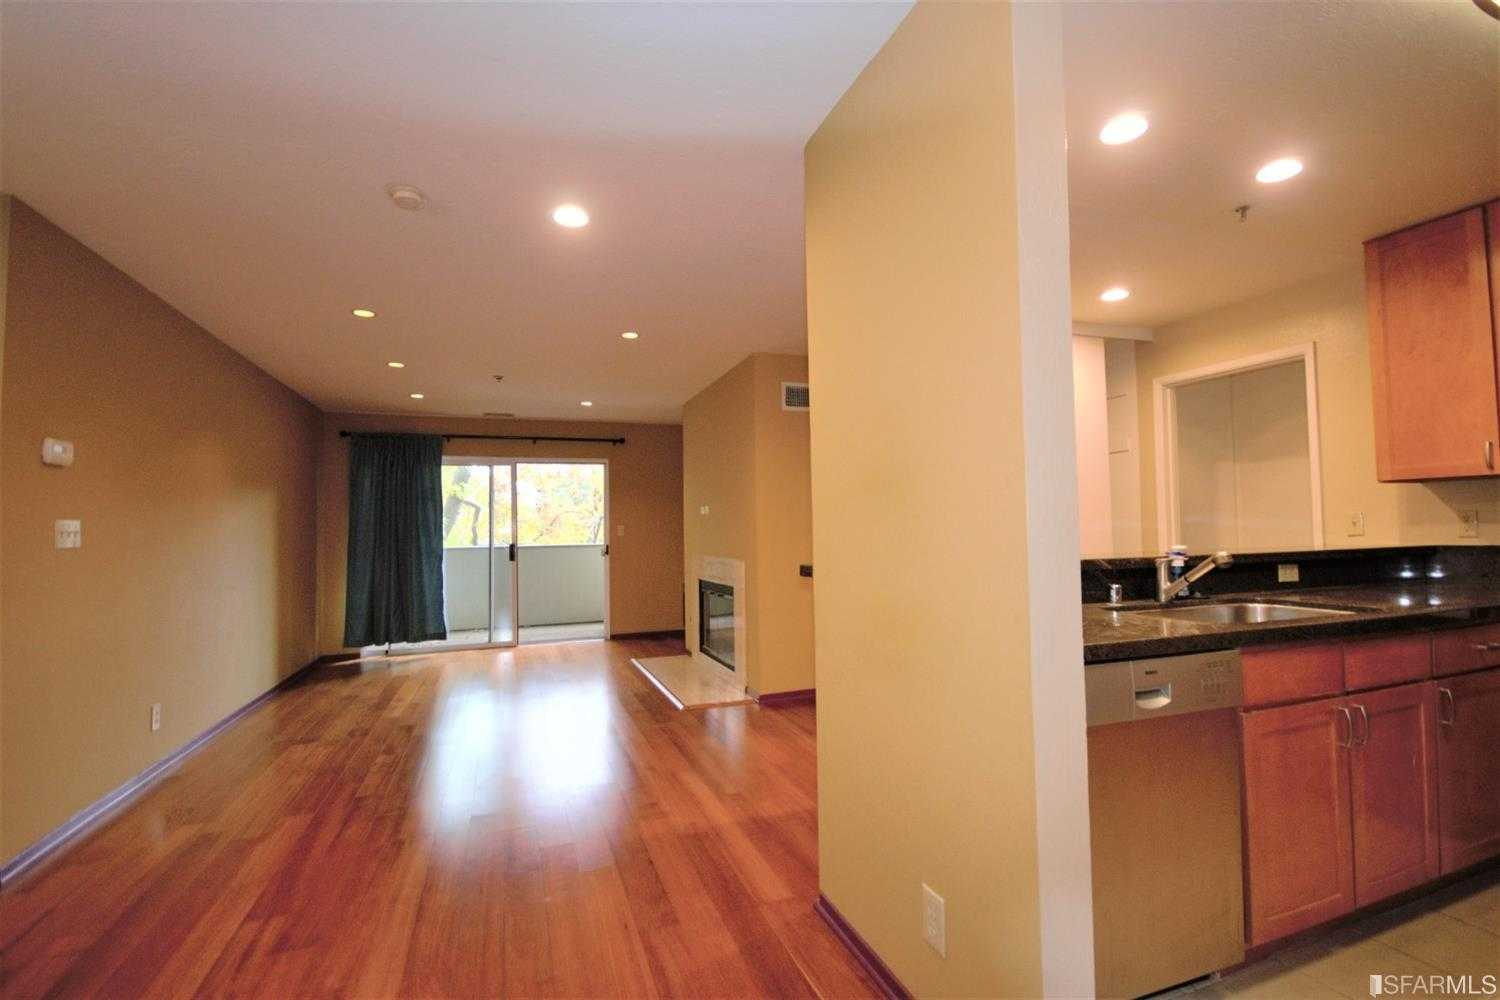 $3,180 - 2Br/2Ba -  for Sale in Millbrae